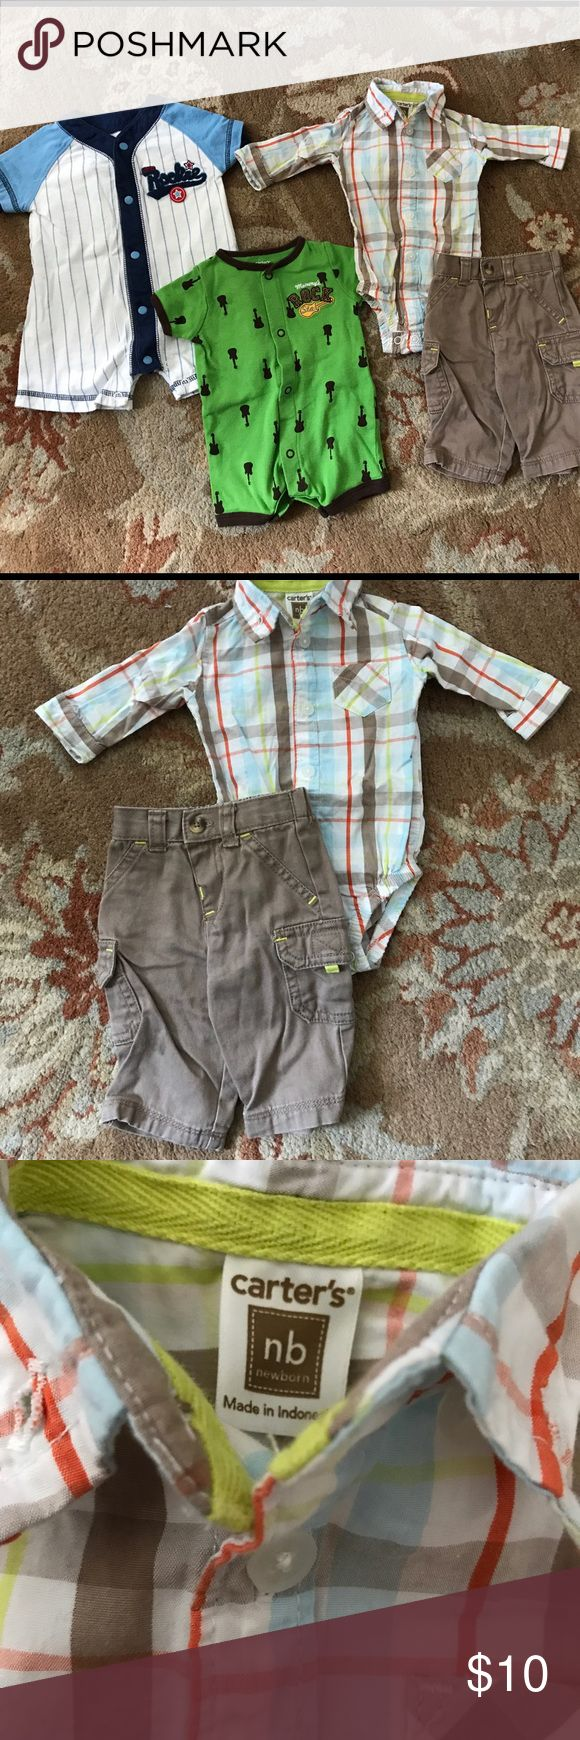 Lot of newborn boy rompers/outfit Lot of boys newborn clothes, all Carters brand and good used condition.  Dress shirt onesie and pants set is so cute, just a little wrinkled. Two nb onesies with normal wash wear, mommy's rock star and baseball designs (baseball one is same brand but runs large, closer to 0-3m). Would be great for an Easter baby! Carter's Matching Sets